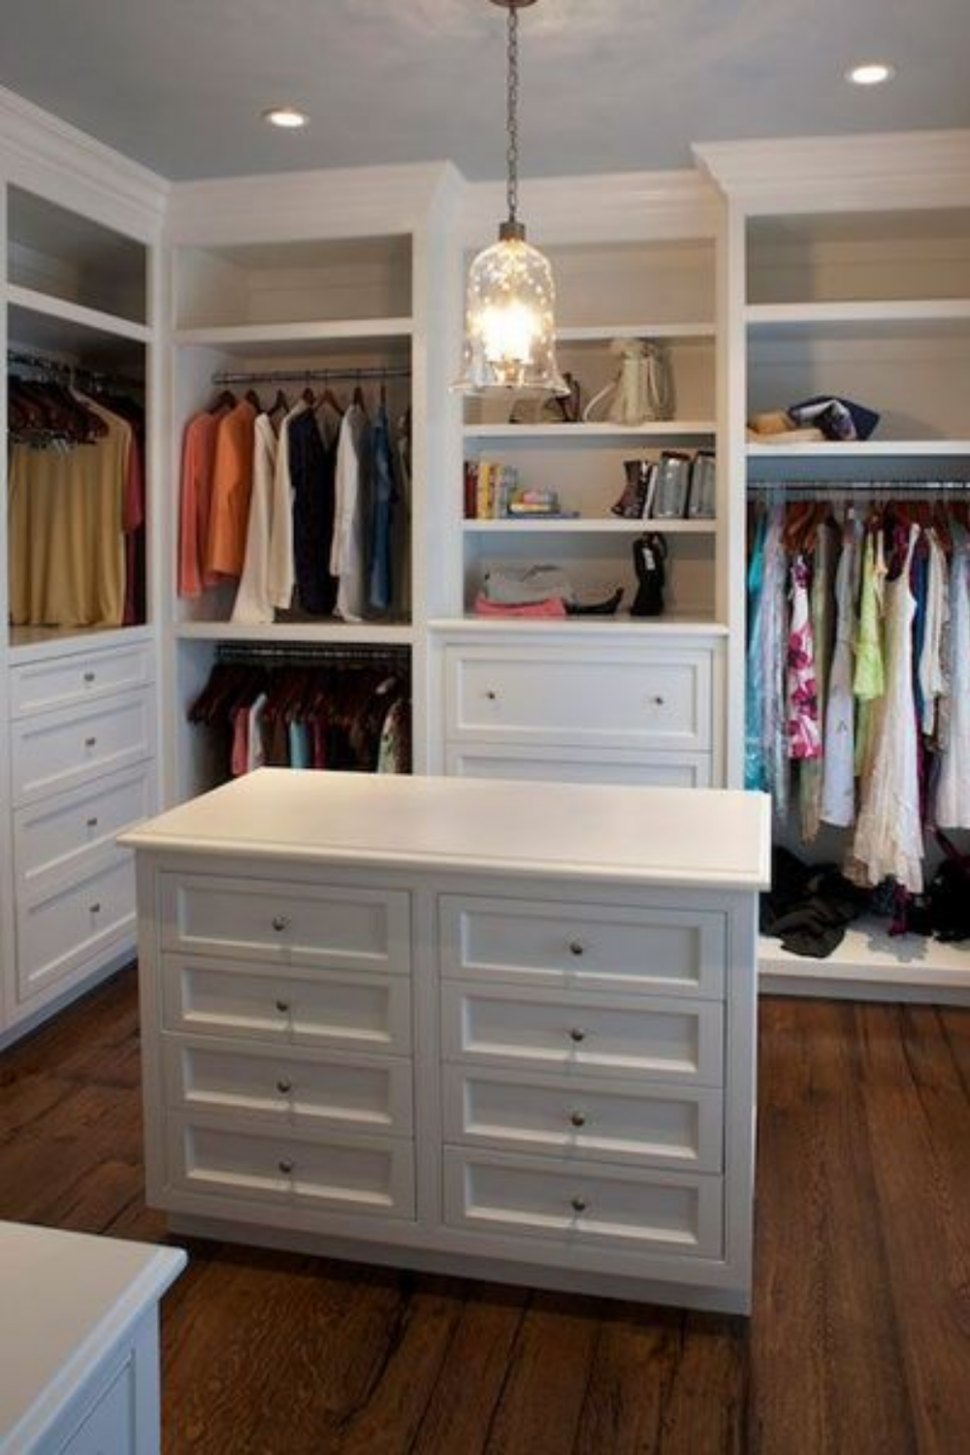 Famous People Walk In Closet Ideas in 8  Master closet design  - Closet Ideas Master Bedroom